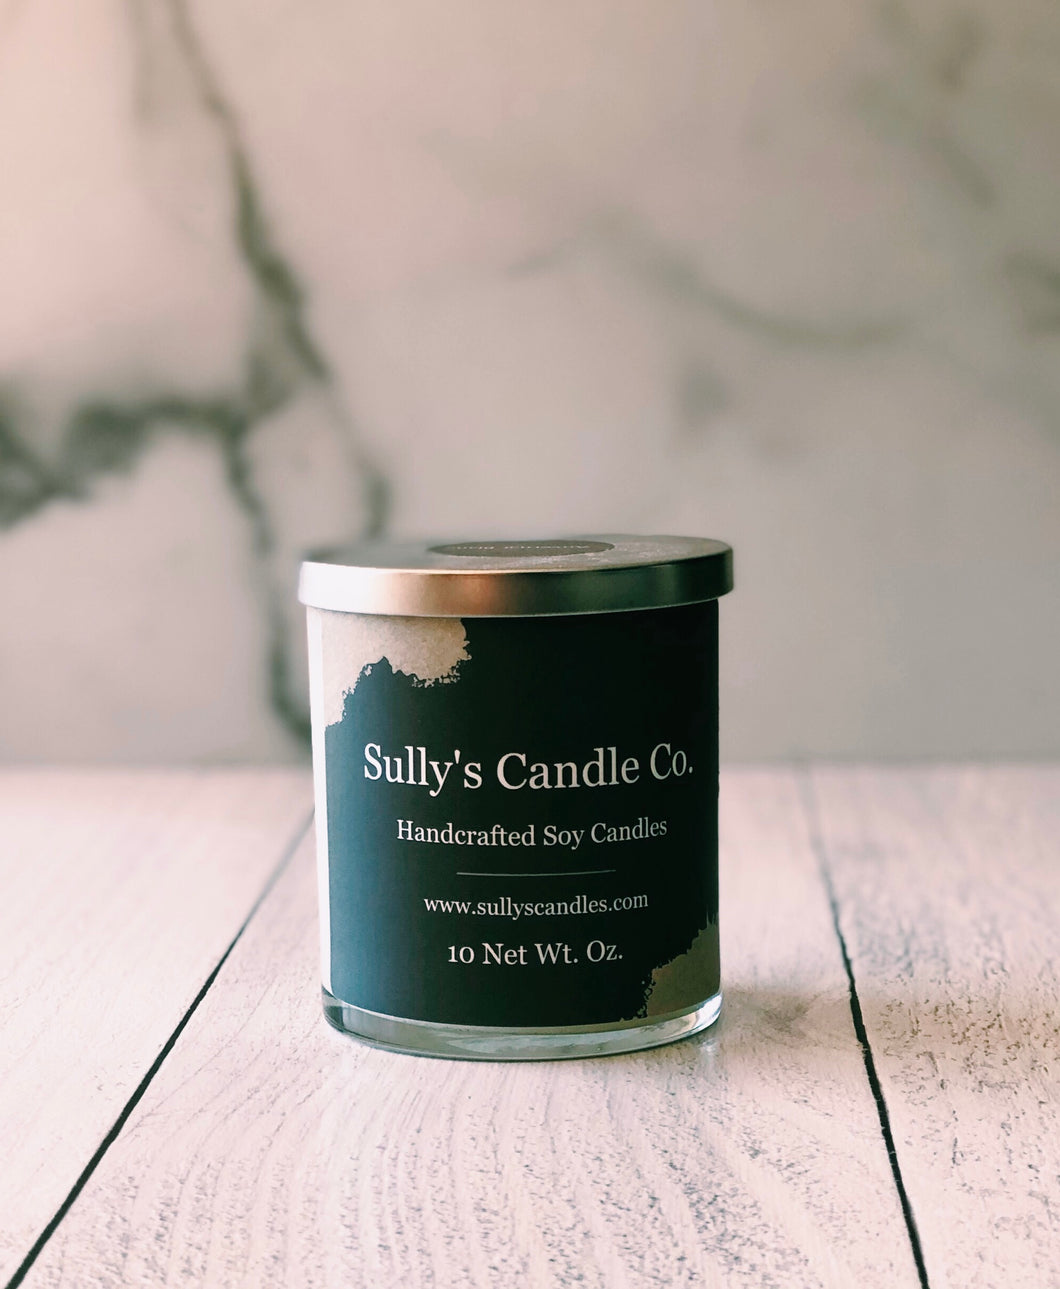 Leather - Sully's Candle Co.